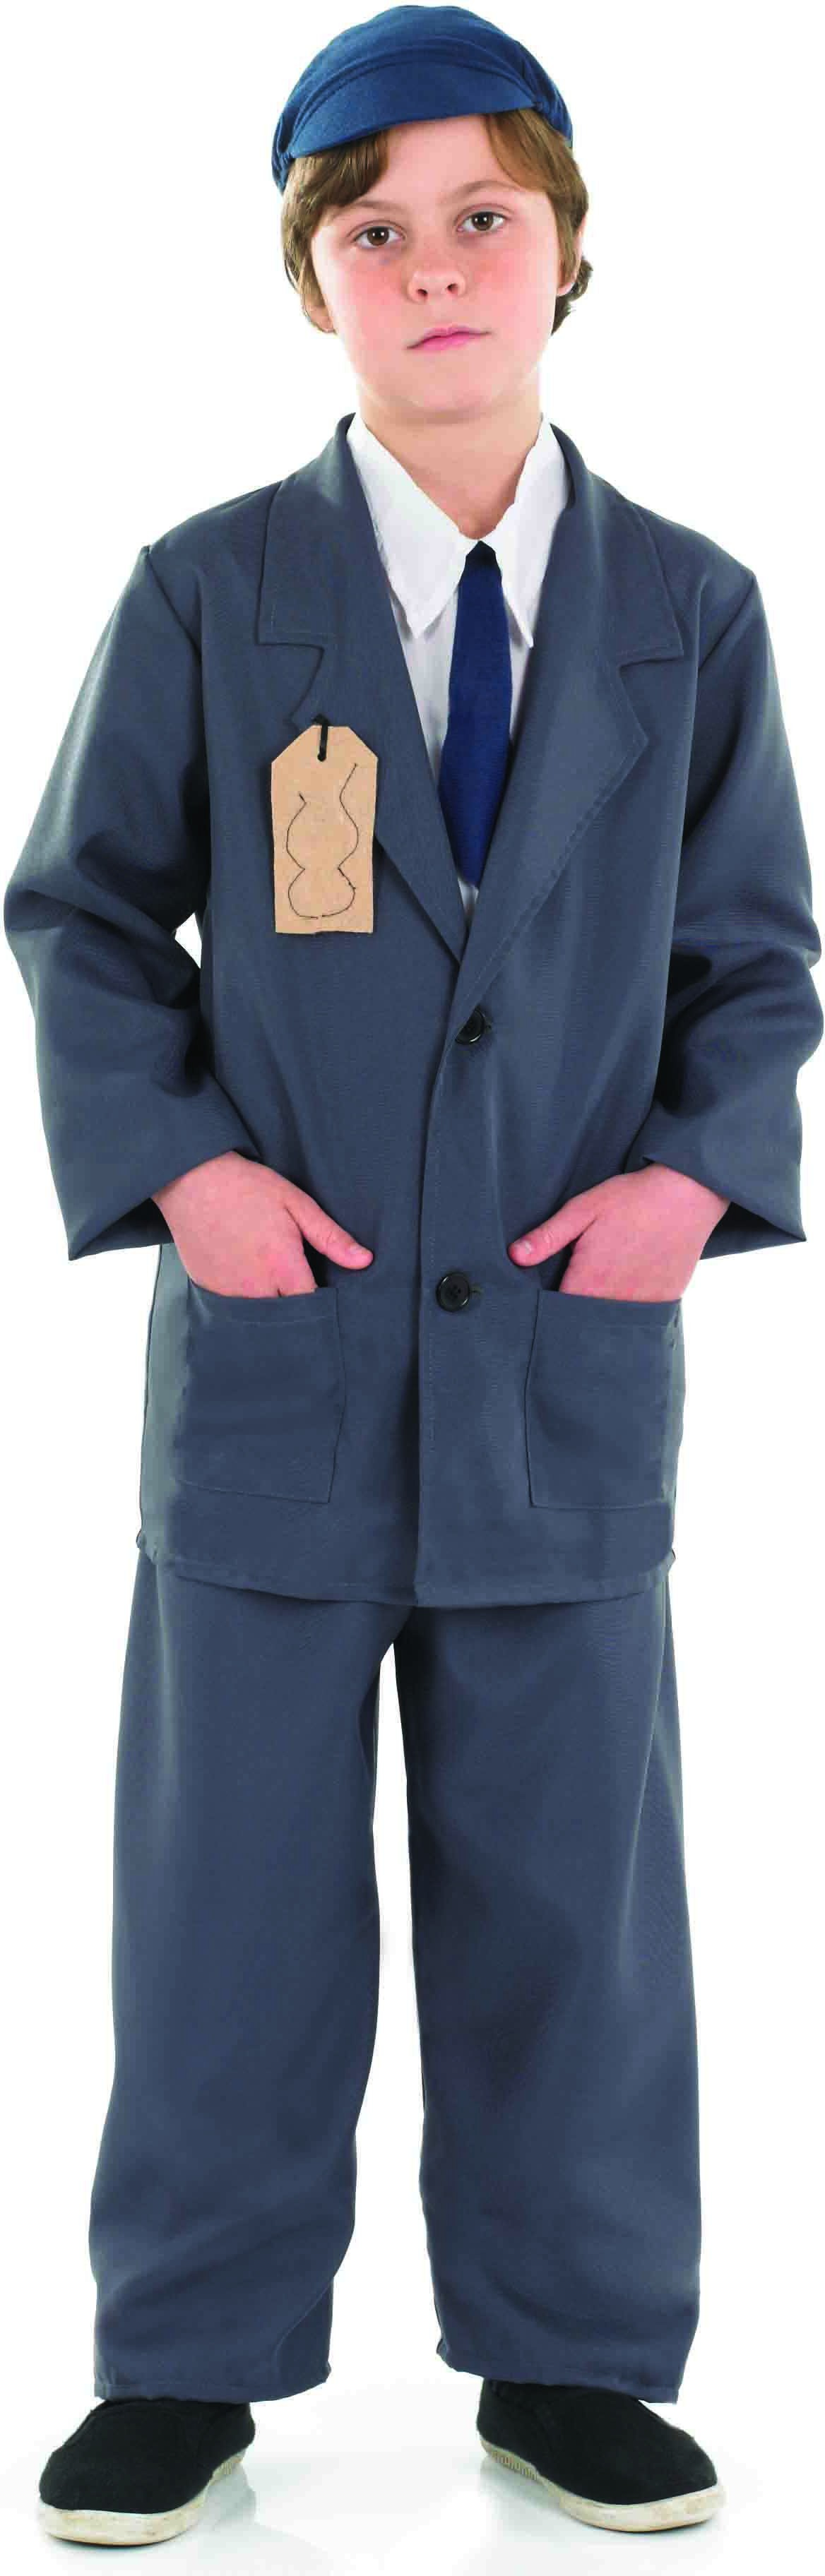 Boys Evacuee Boy Suit Fairy Tales Outfit - (Grey)